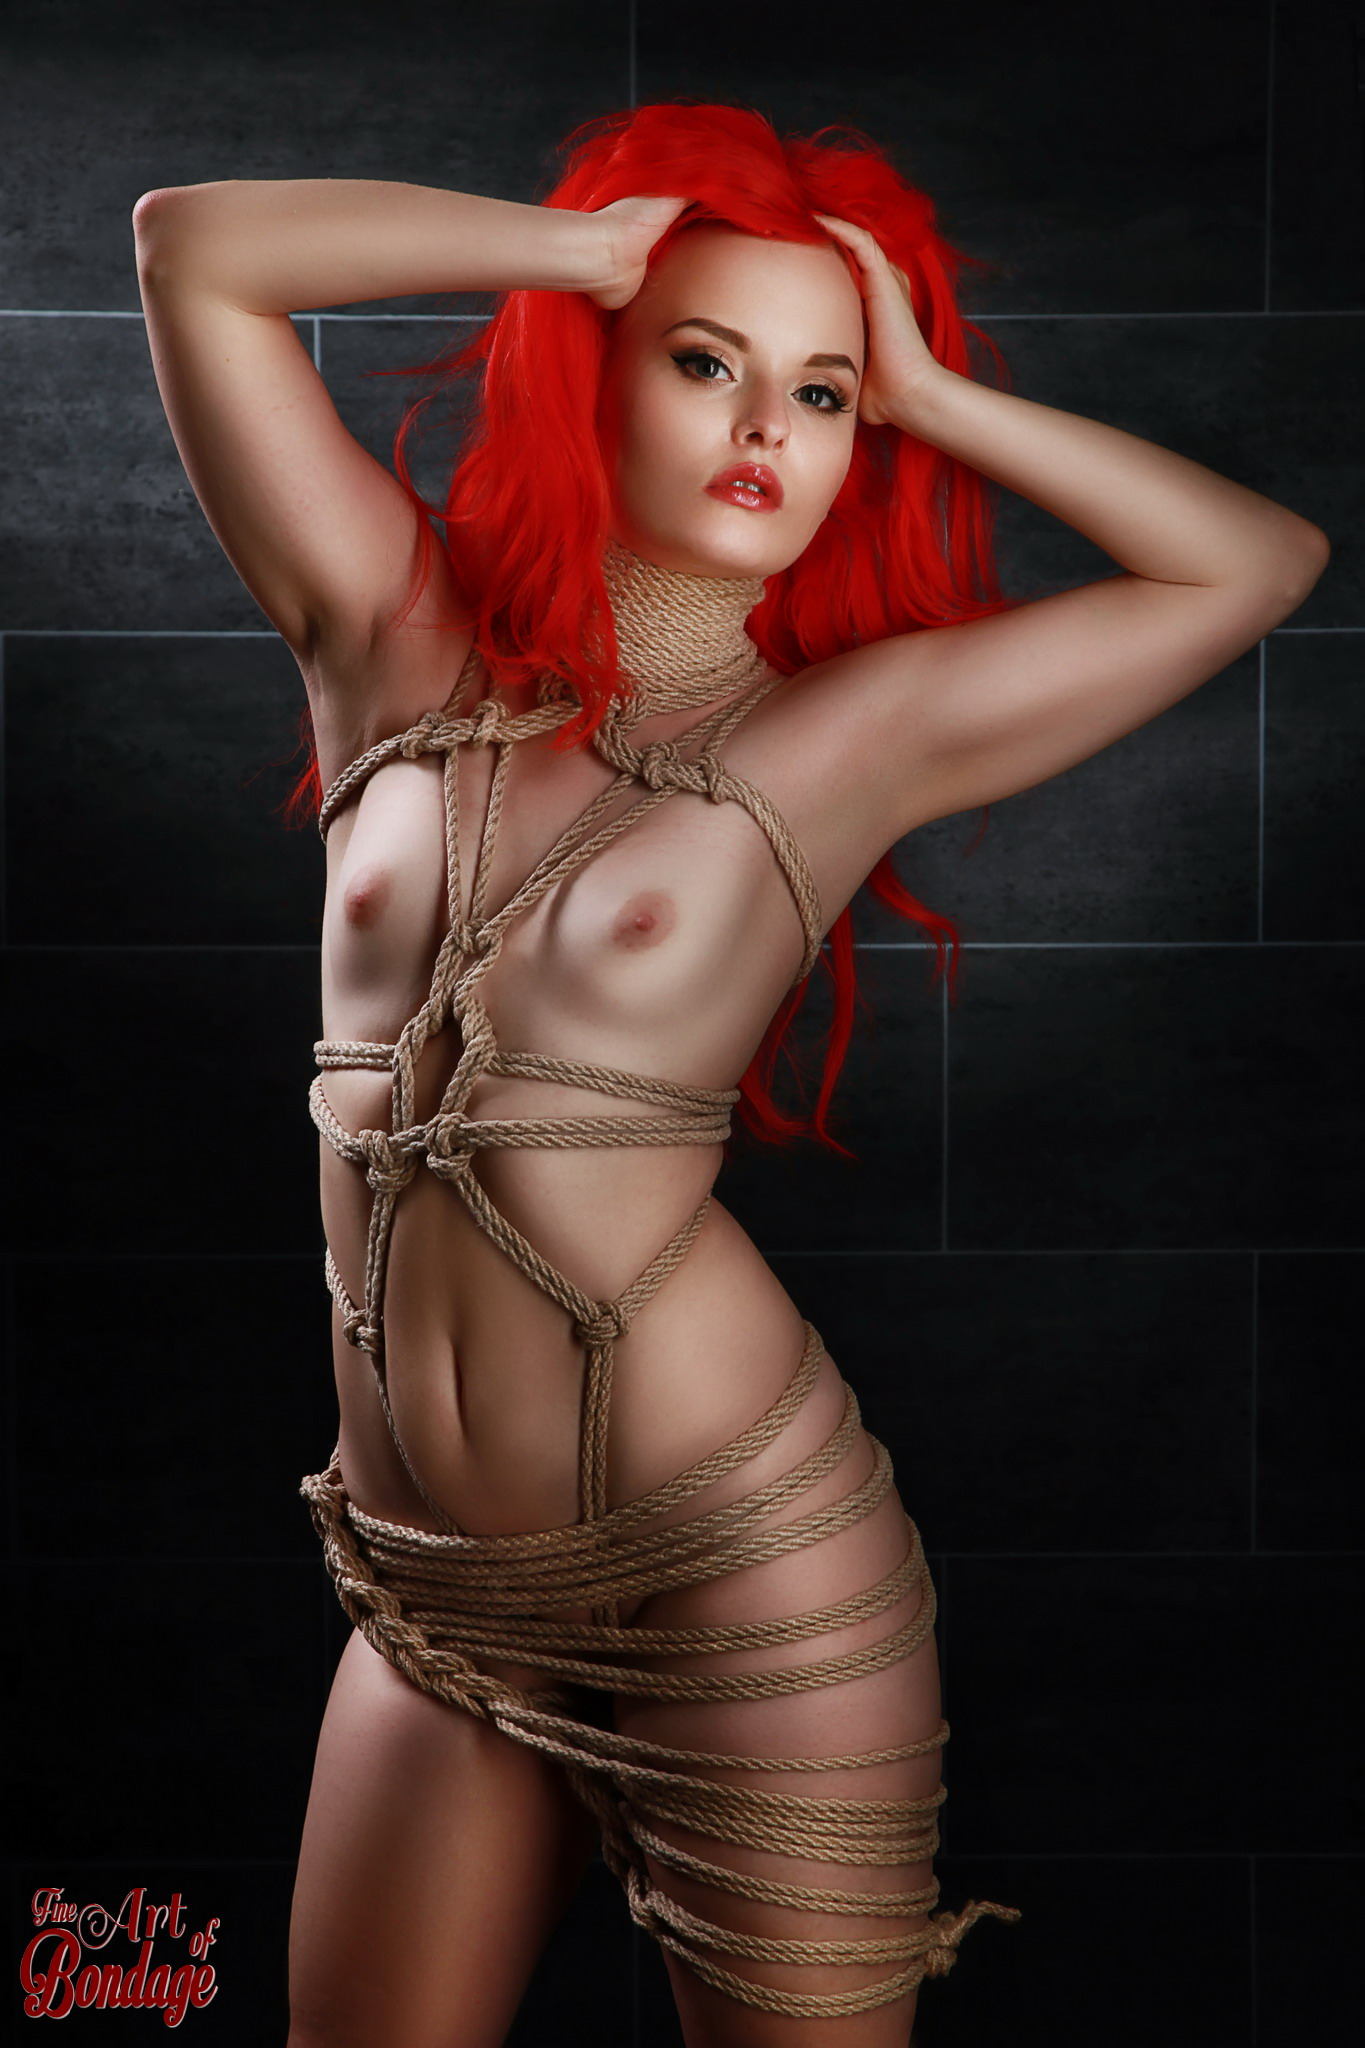 bondage girl  Tied girl, rope harness - Fine Art of Bondage